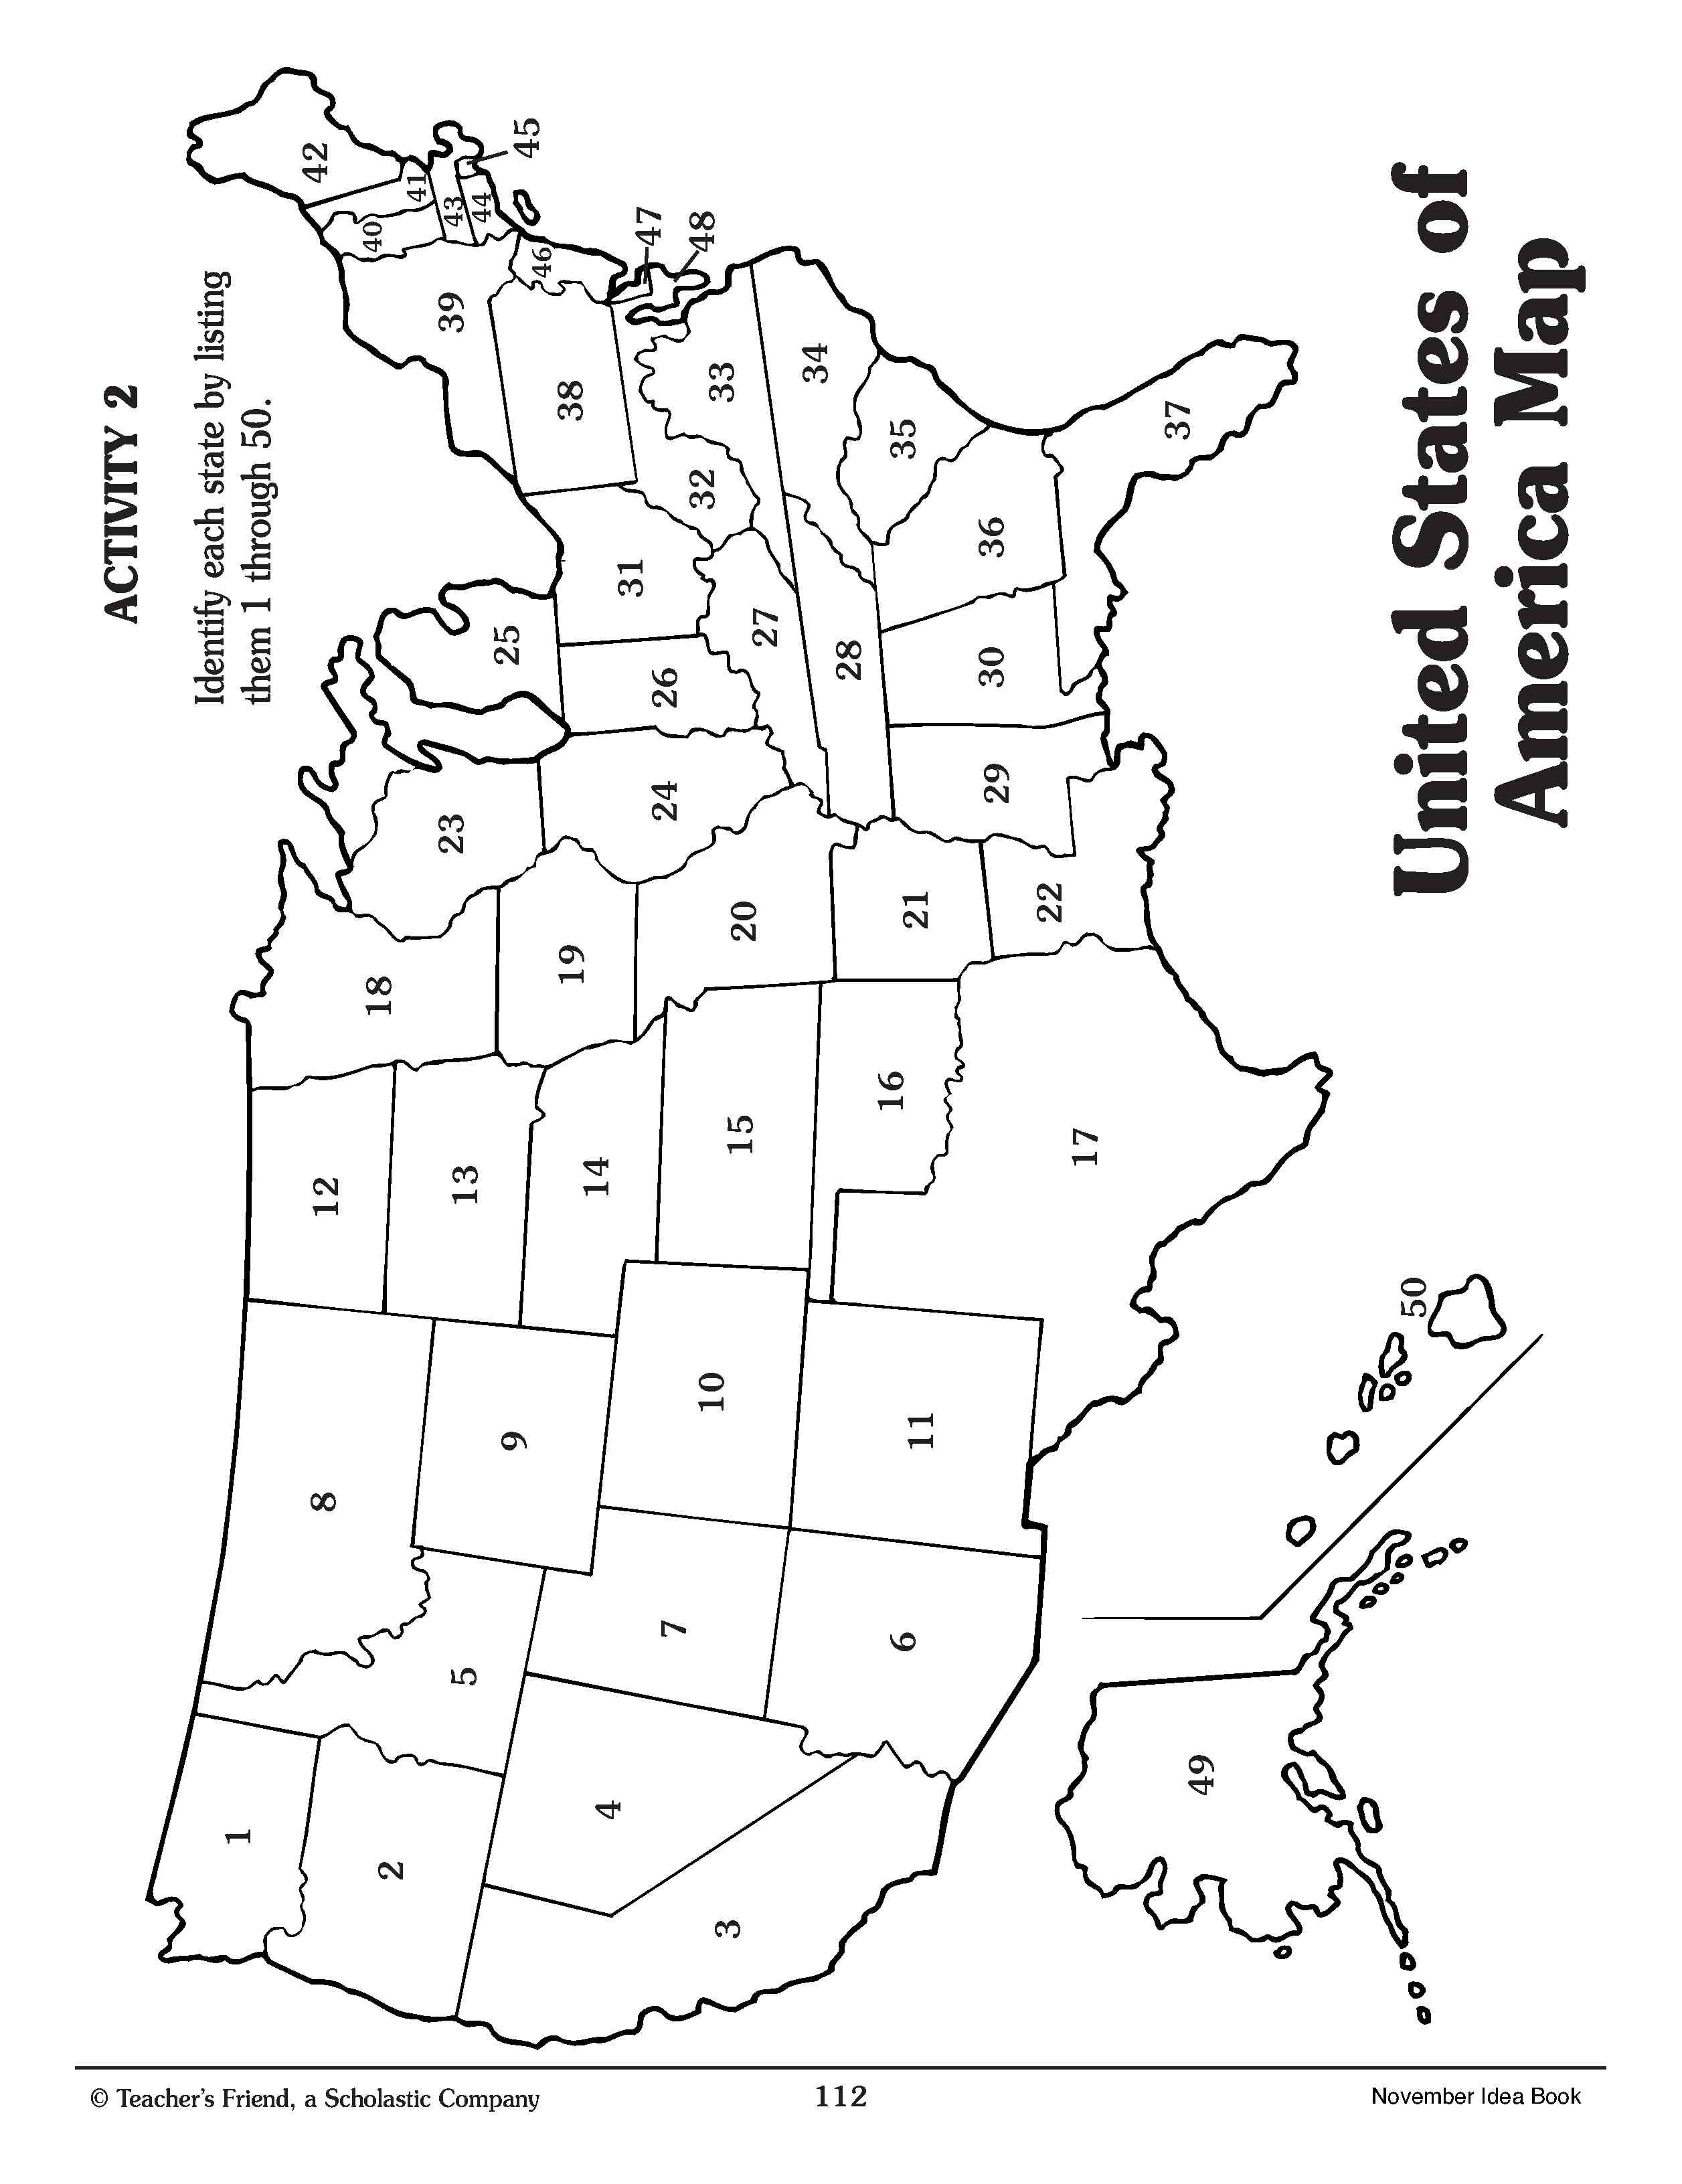 Coloring Pages Social Studies Geography And School Map Of The